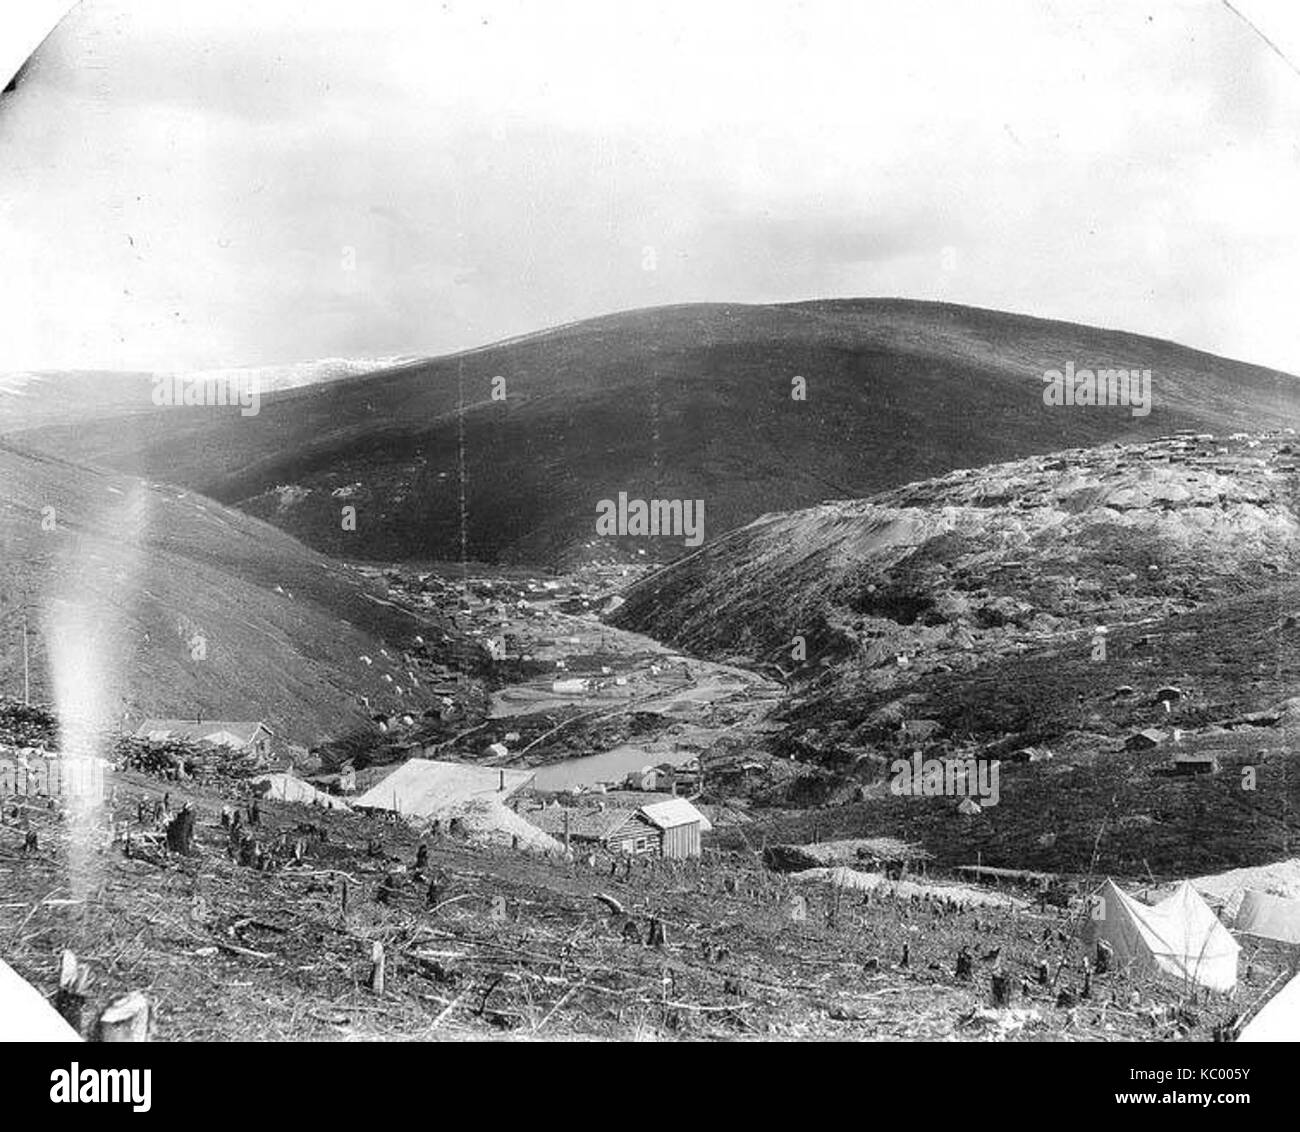 Gold Hill, Forks and mining claims from Cheechako Hill, May 22, 1900 (SARVANT 123) - Stock Image